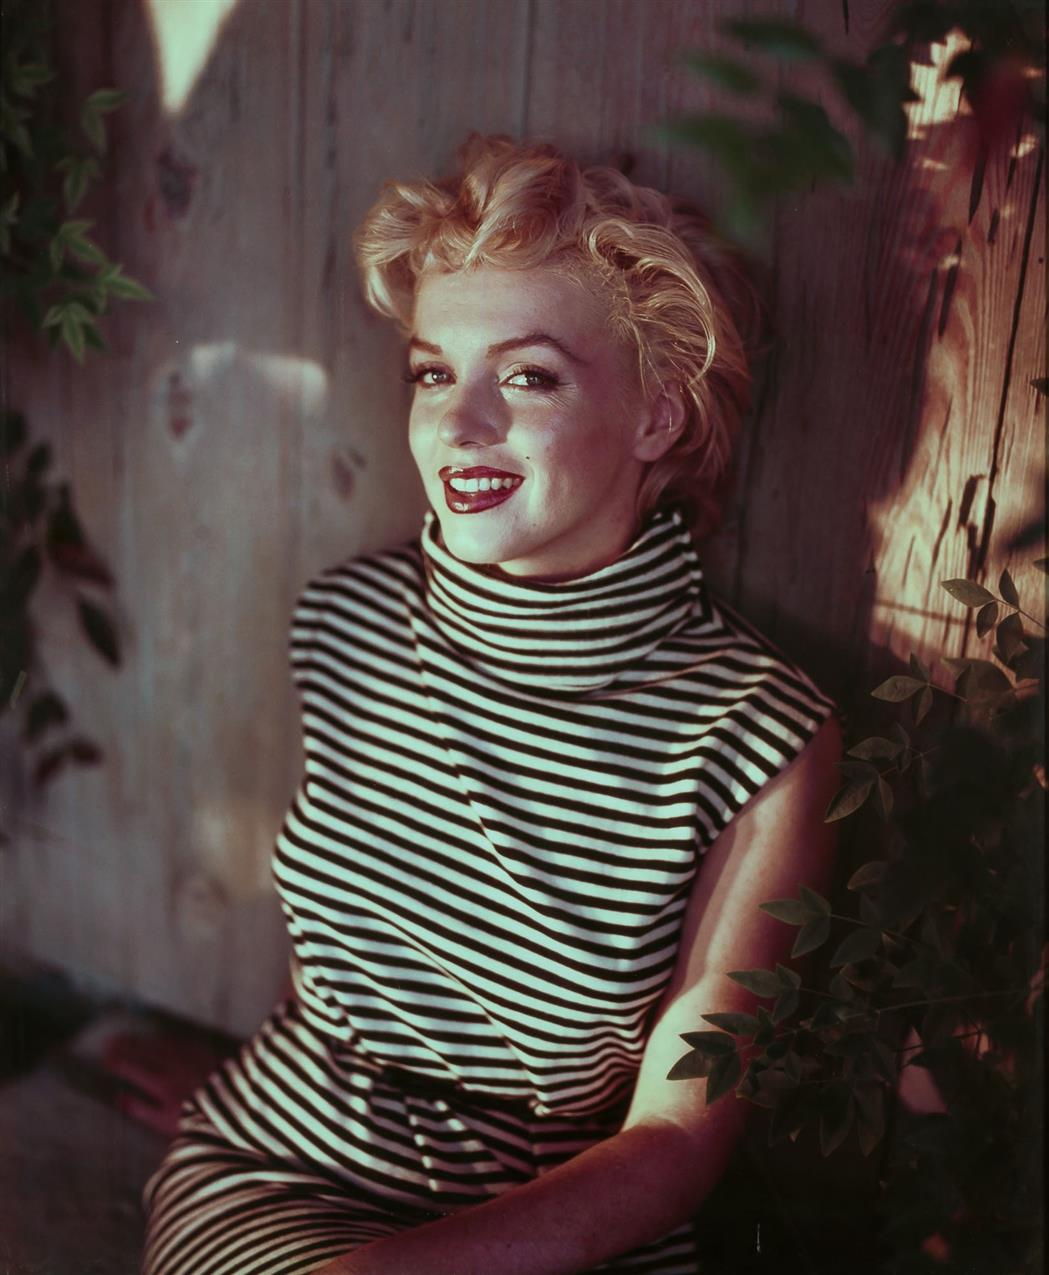 Lot image - [BARON STUDIOS]  Large format portrait of Marilyn Monroe